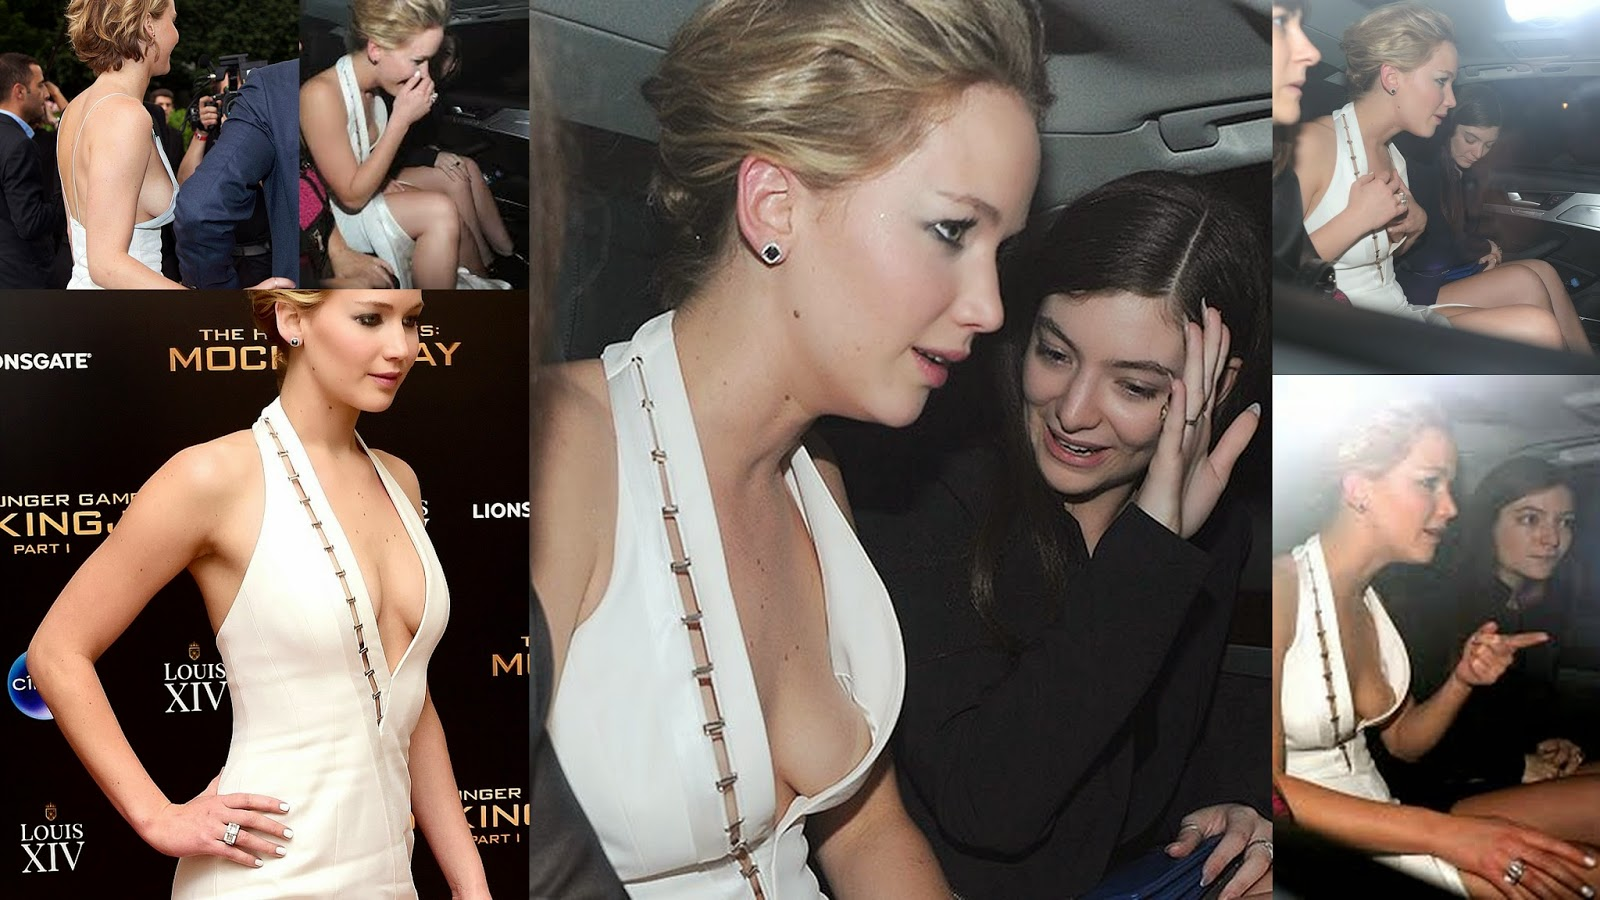 Jennifer Lawrence Many Time Suffers Nip Slip In Party Or After Party Jennifer Just Cant Catch A Break The Hunger Games Actress Who Was A Victim Of A